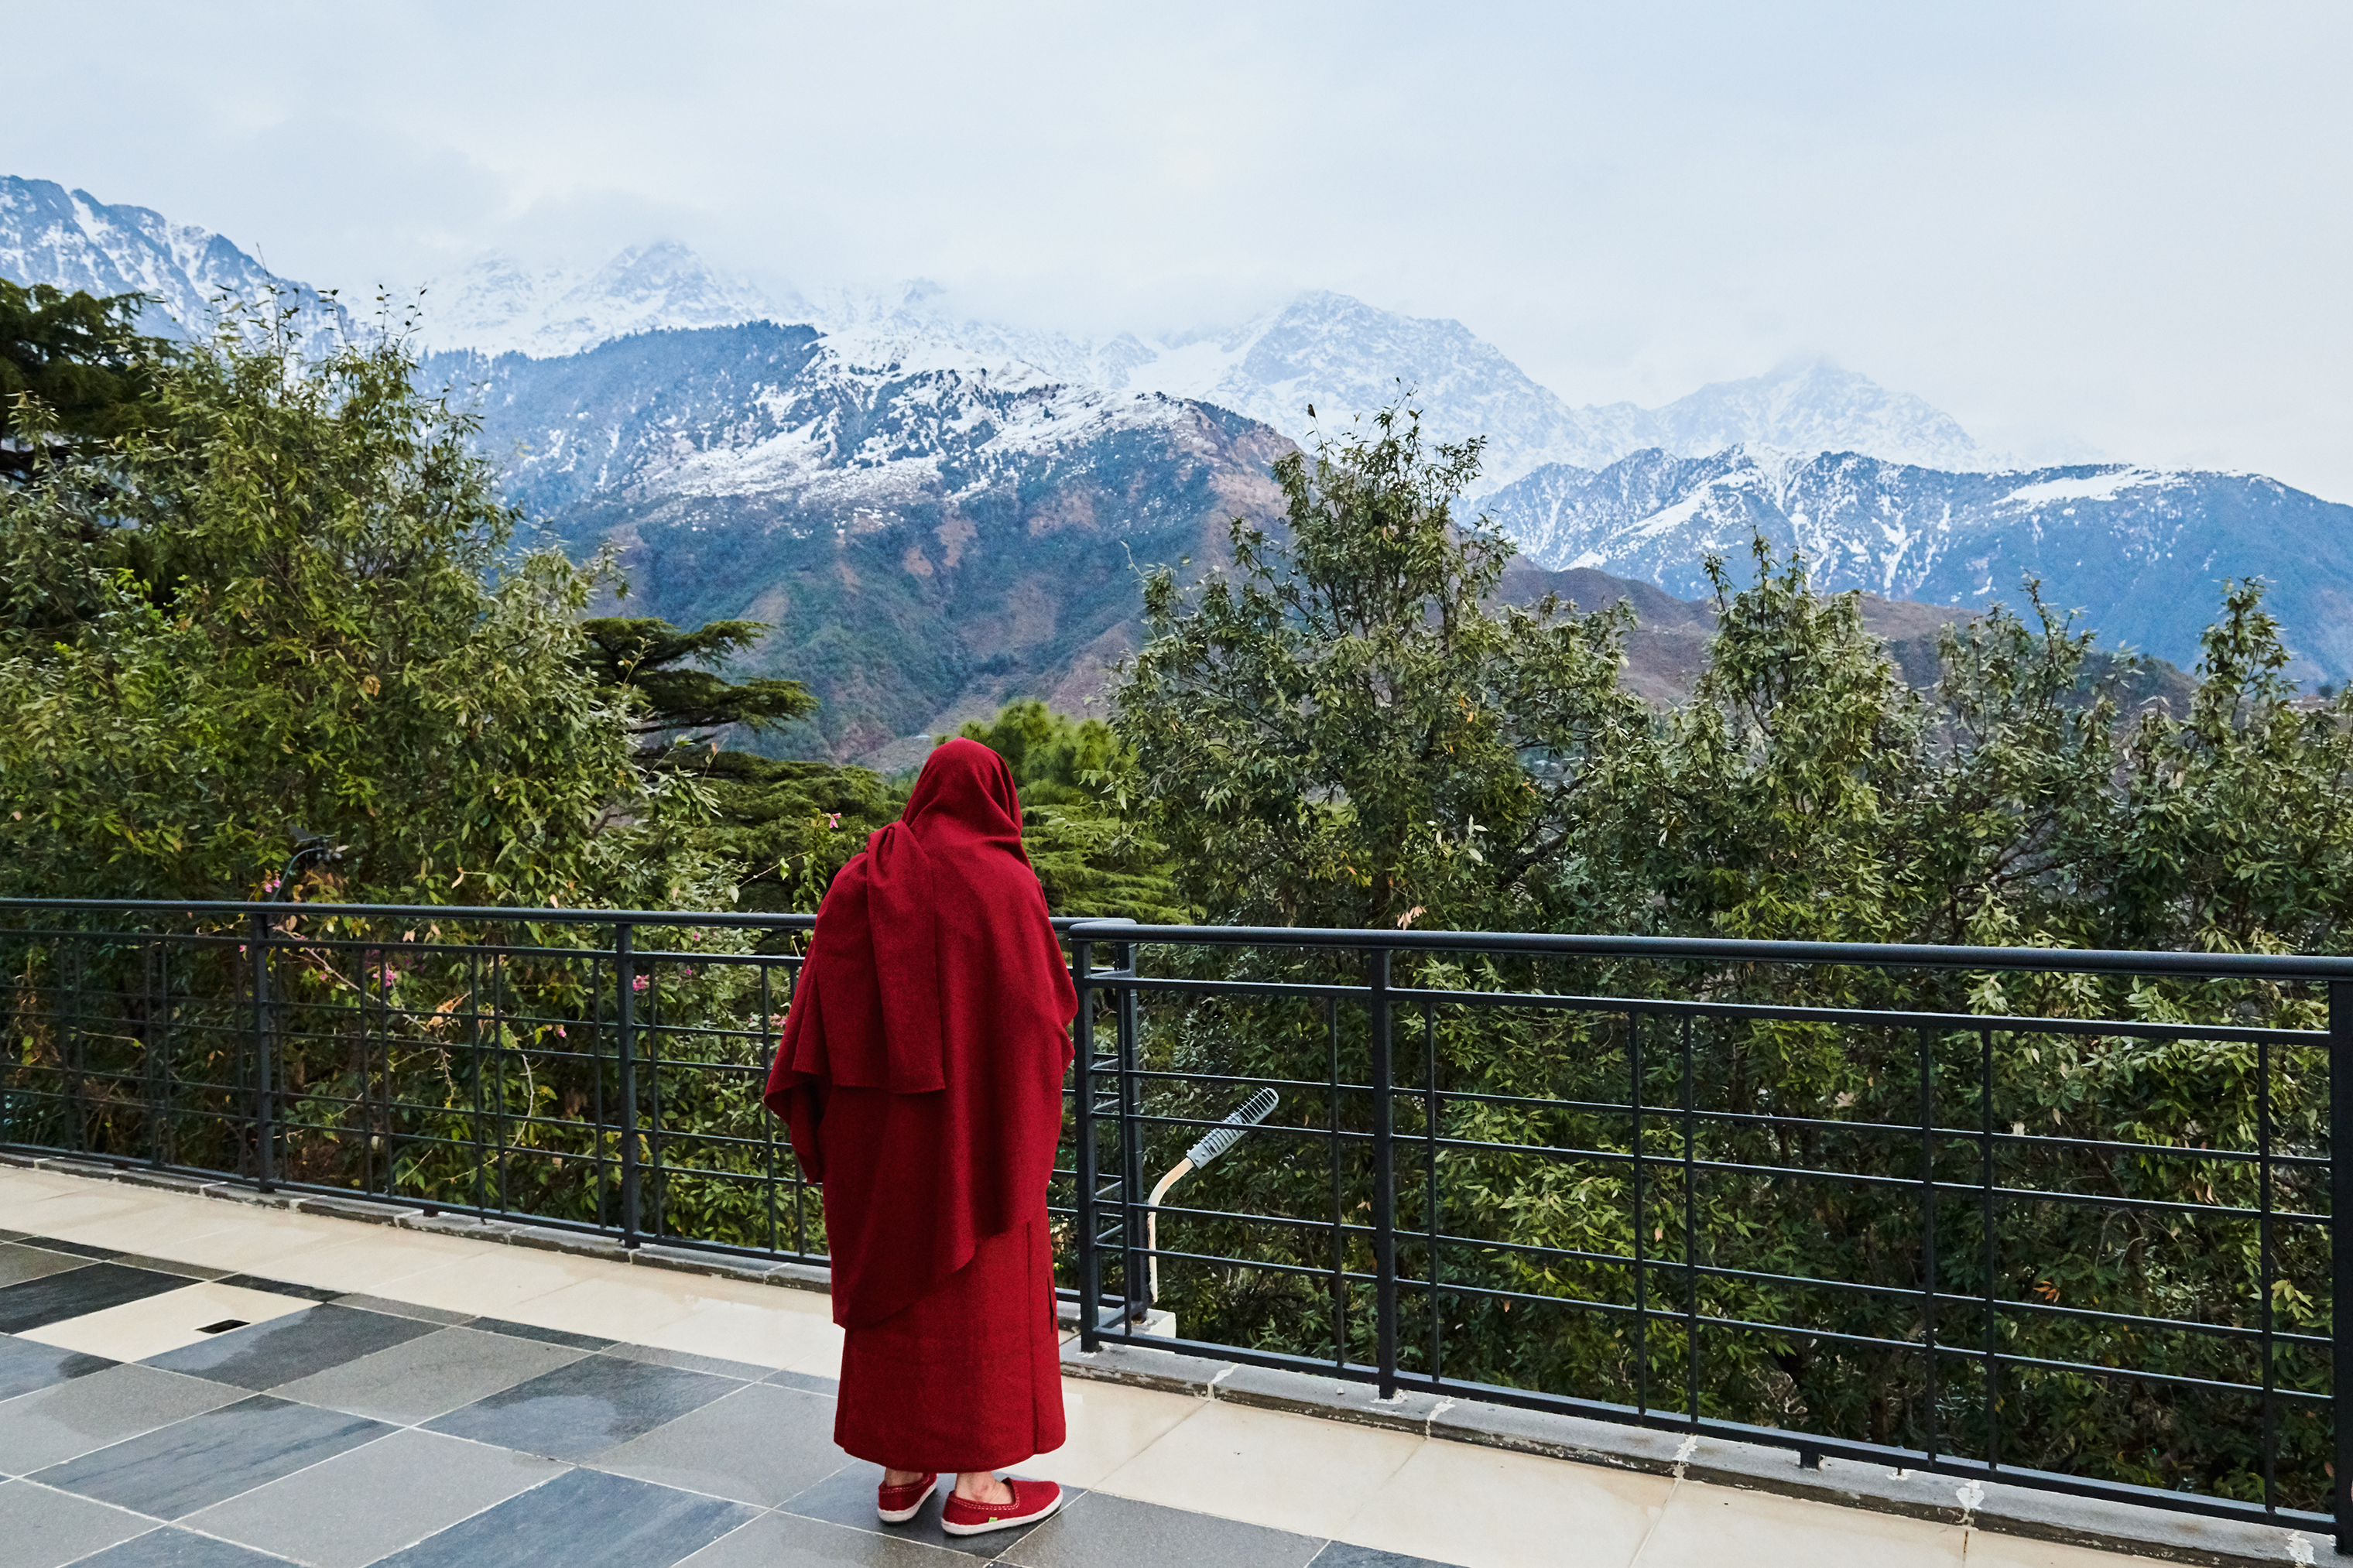 Six decades on, the Dalai Lama still hopes he will visit his birthplace again.